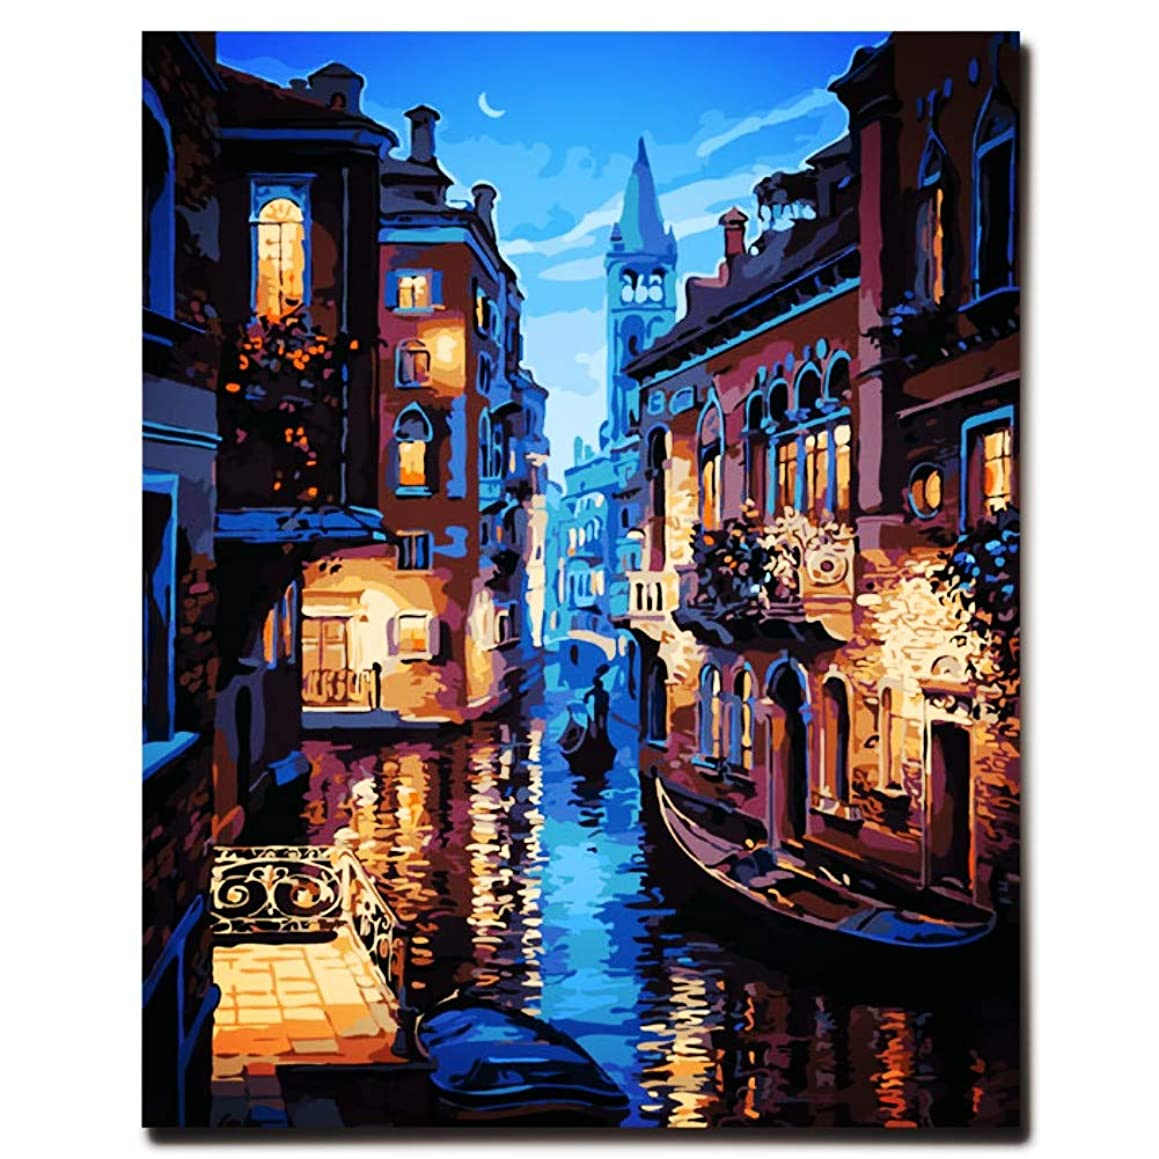 New Arrival DIY Oil Painting by Numbers Kit Theme PBN Kit for Adults Girls Kids White Christmas Decor Decorations Gifts - 6127 (with Frame)